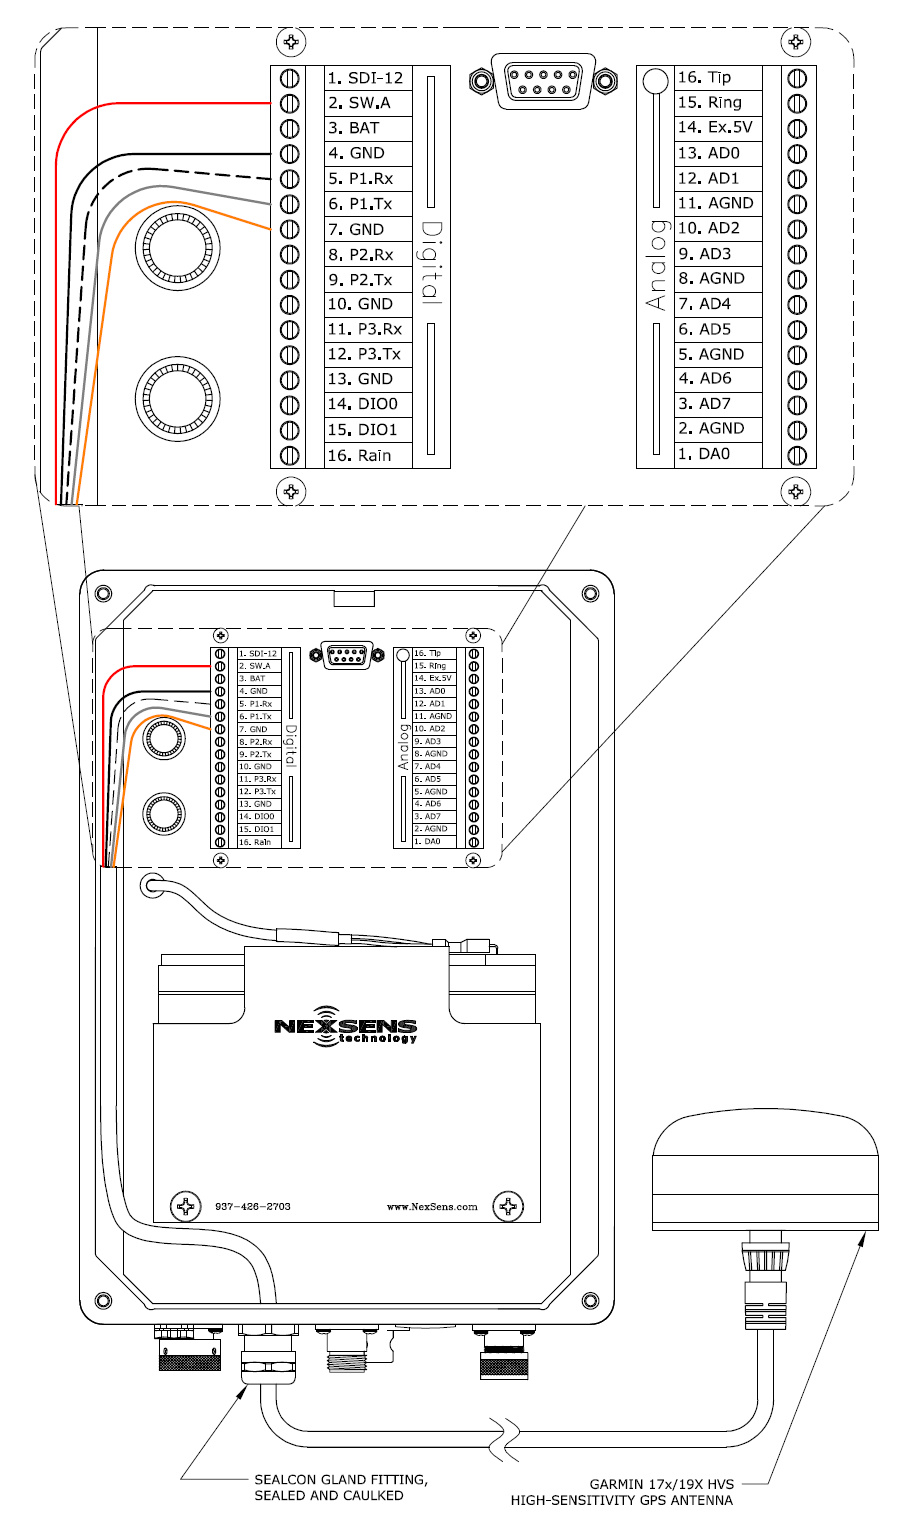 garmin wiring diagram 17 garmin 17x/19x hvs gps high-sensitivity antenna - nexsens ... garmin wiring diagram free download schematic #1